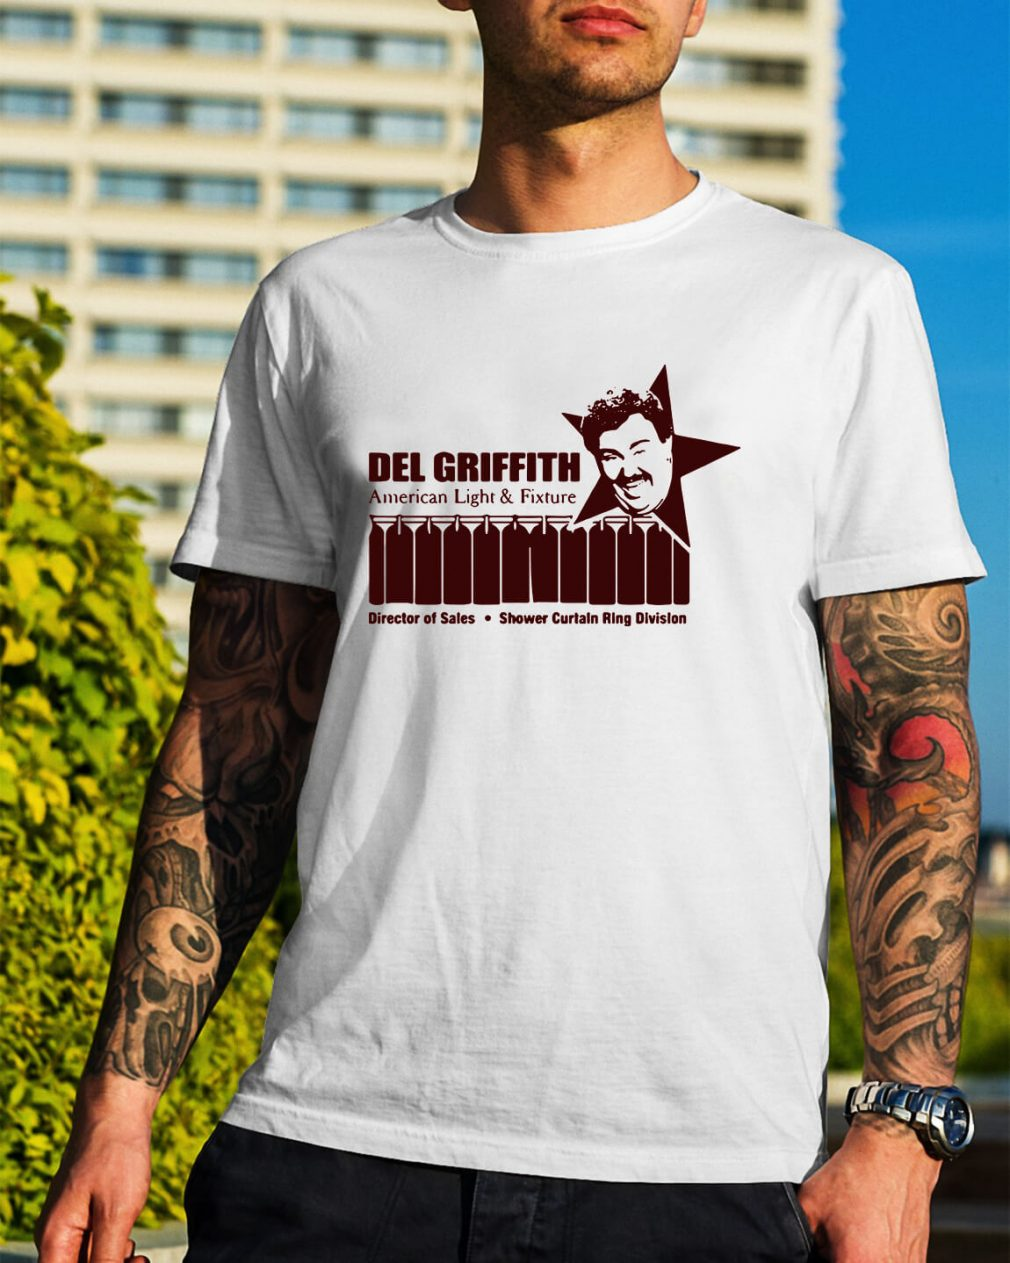 Del Griffith American light and fixture director of sales shirt